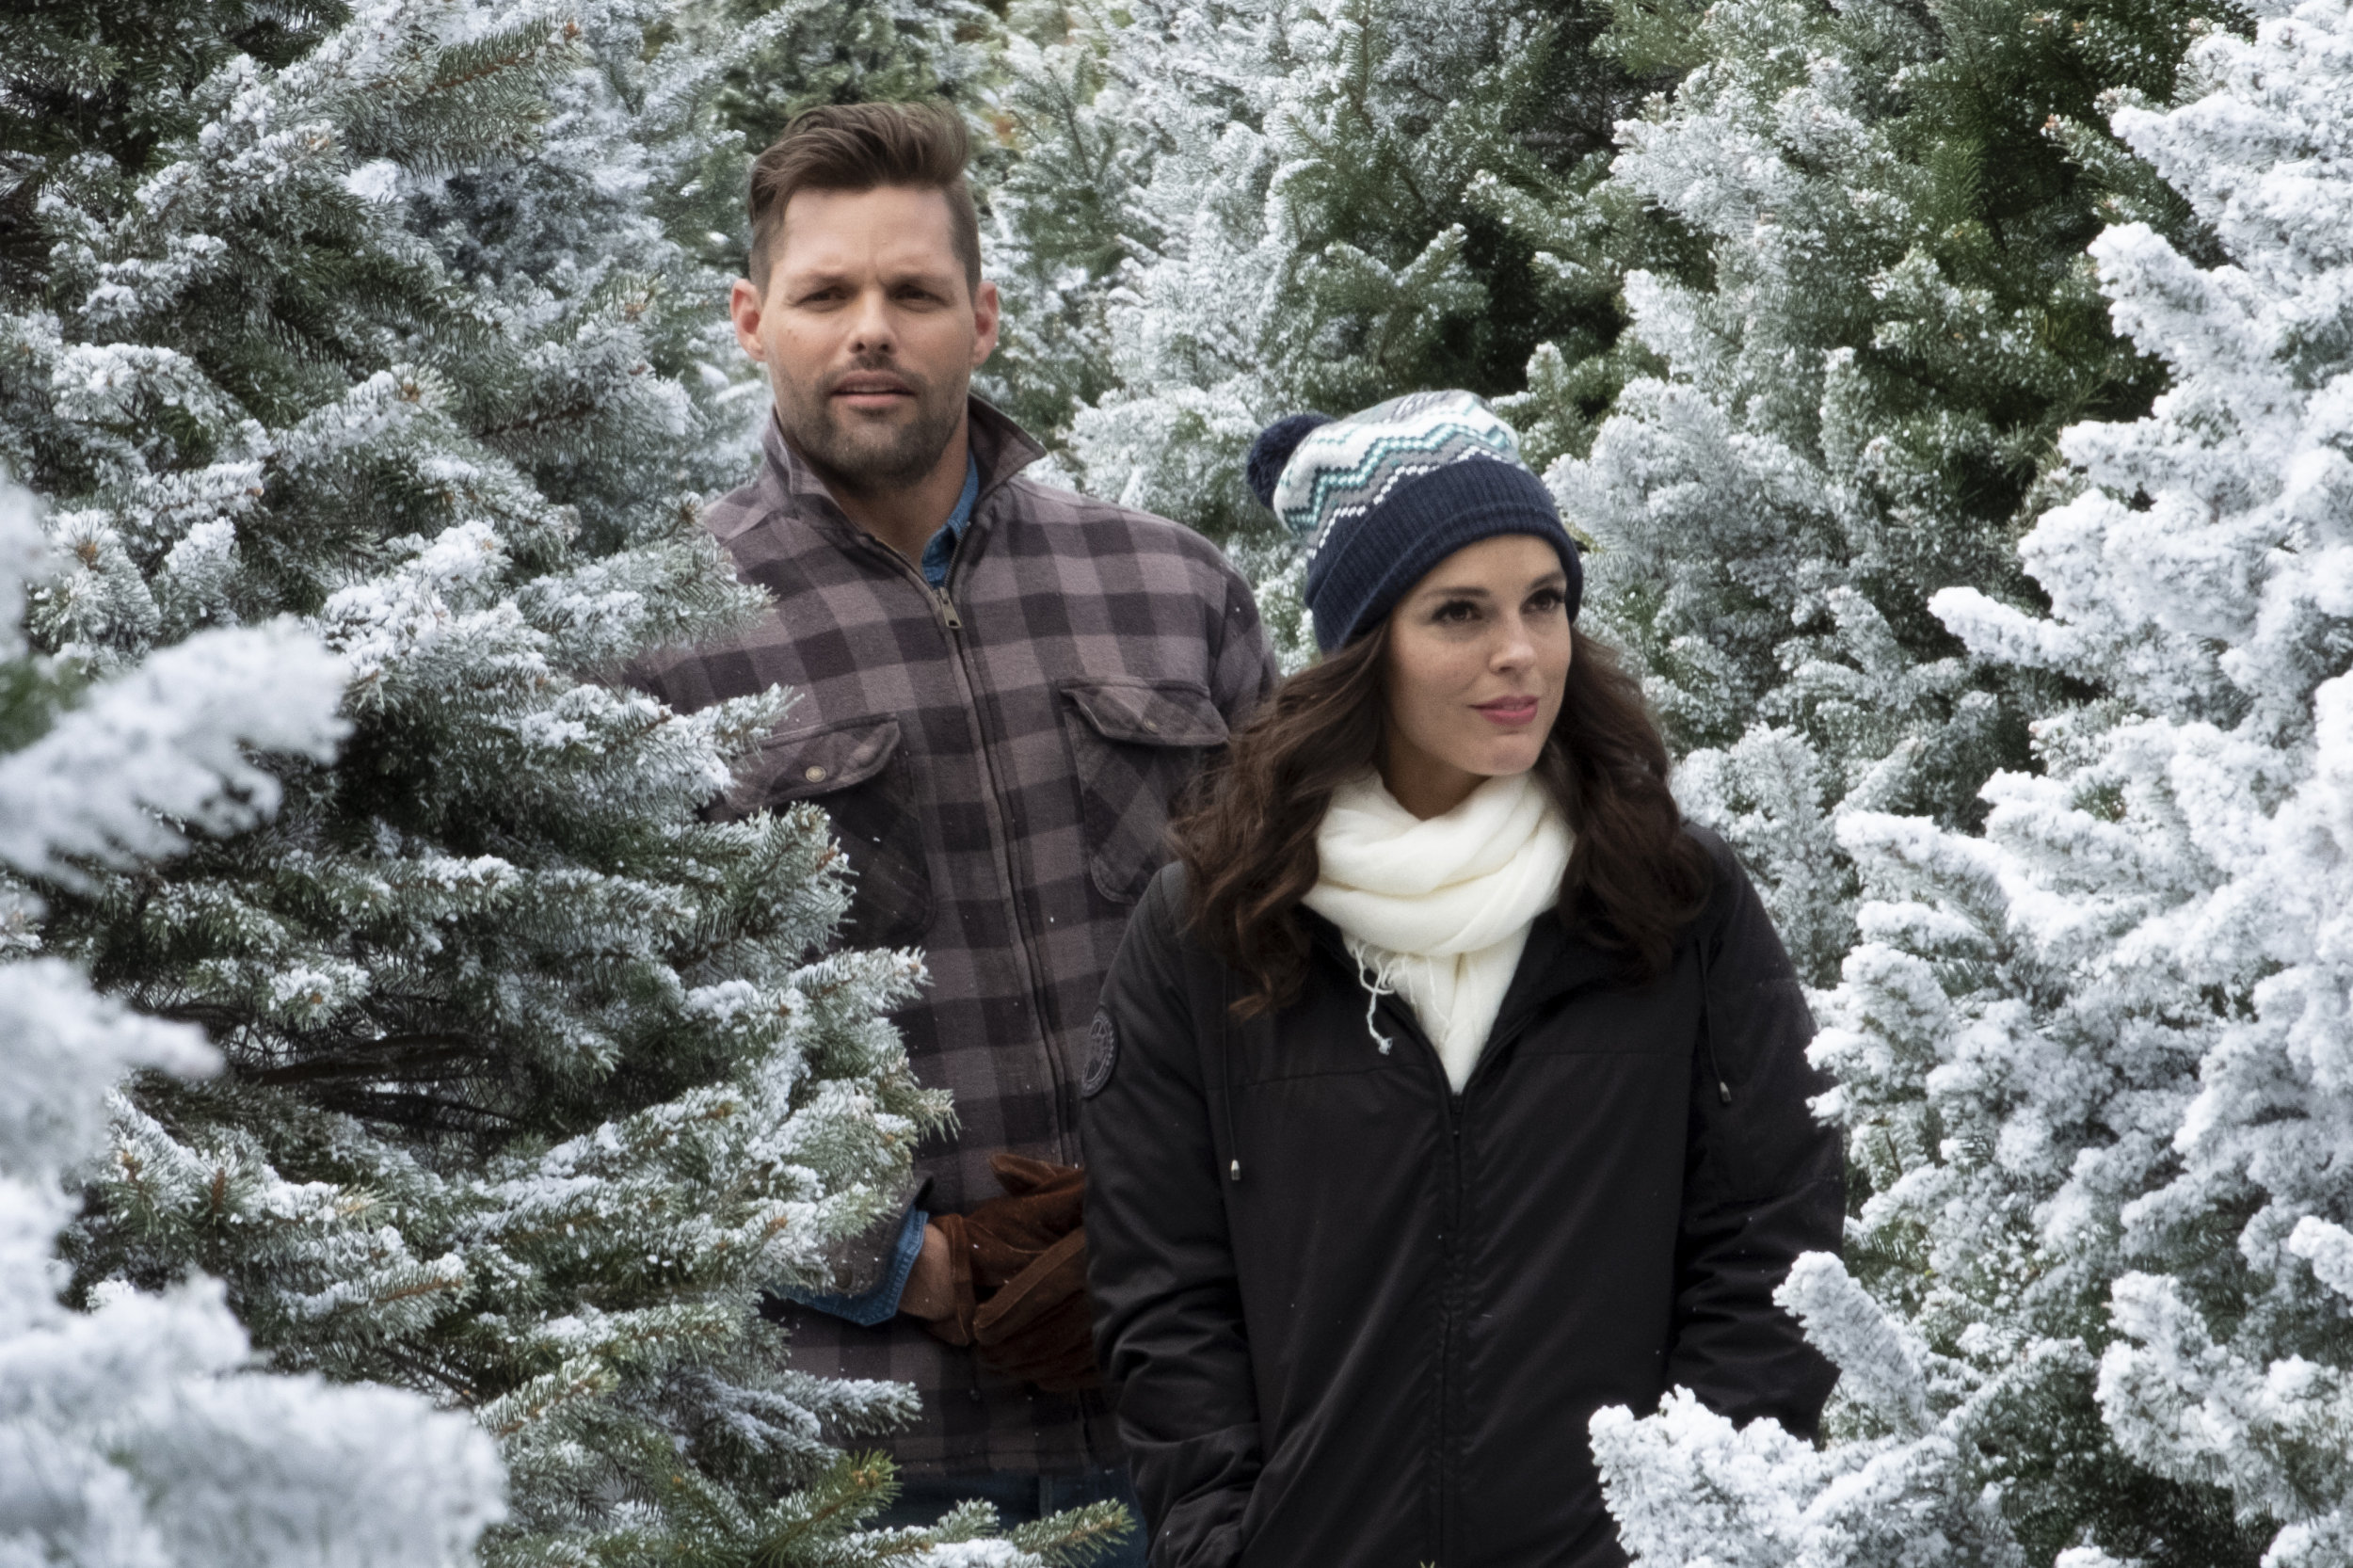 Cast Of Last Christmas In Vermont 2020 Erin Cahill as Megan on Last Vermont Christmas